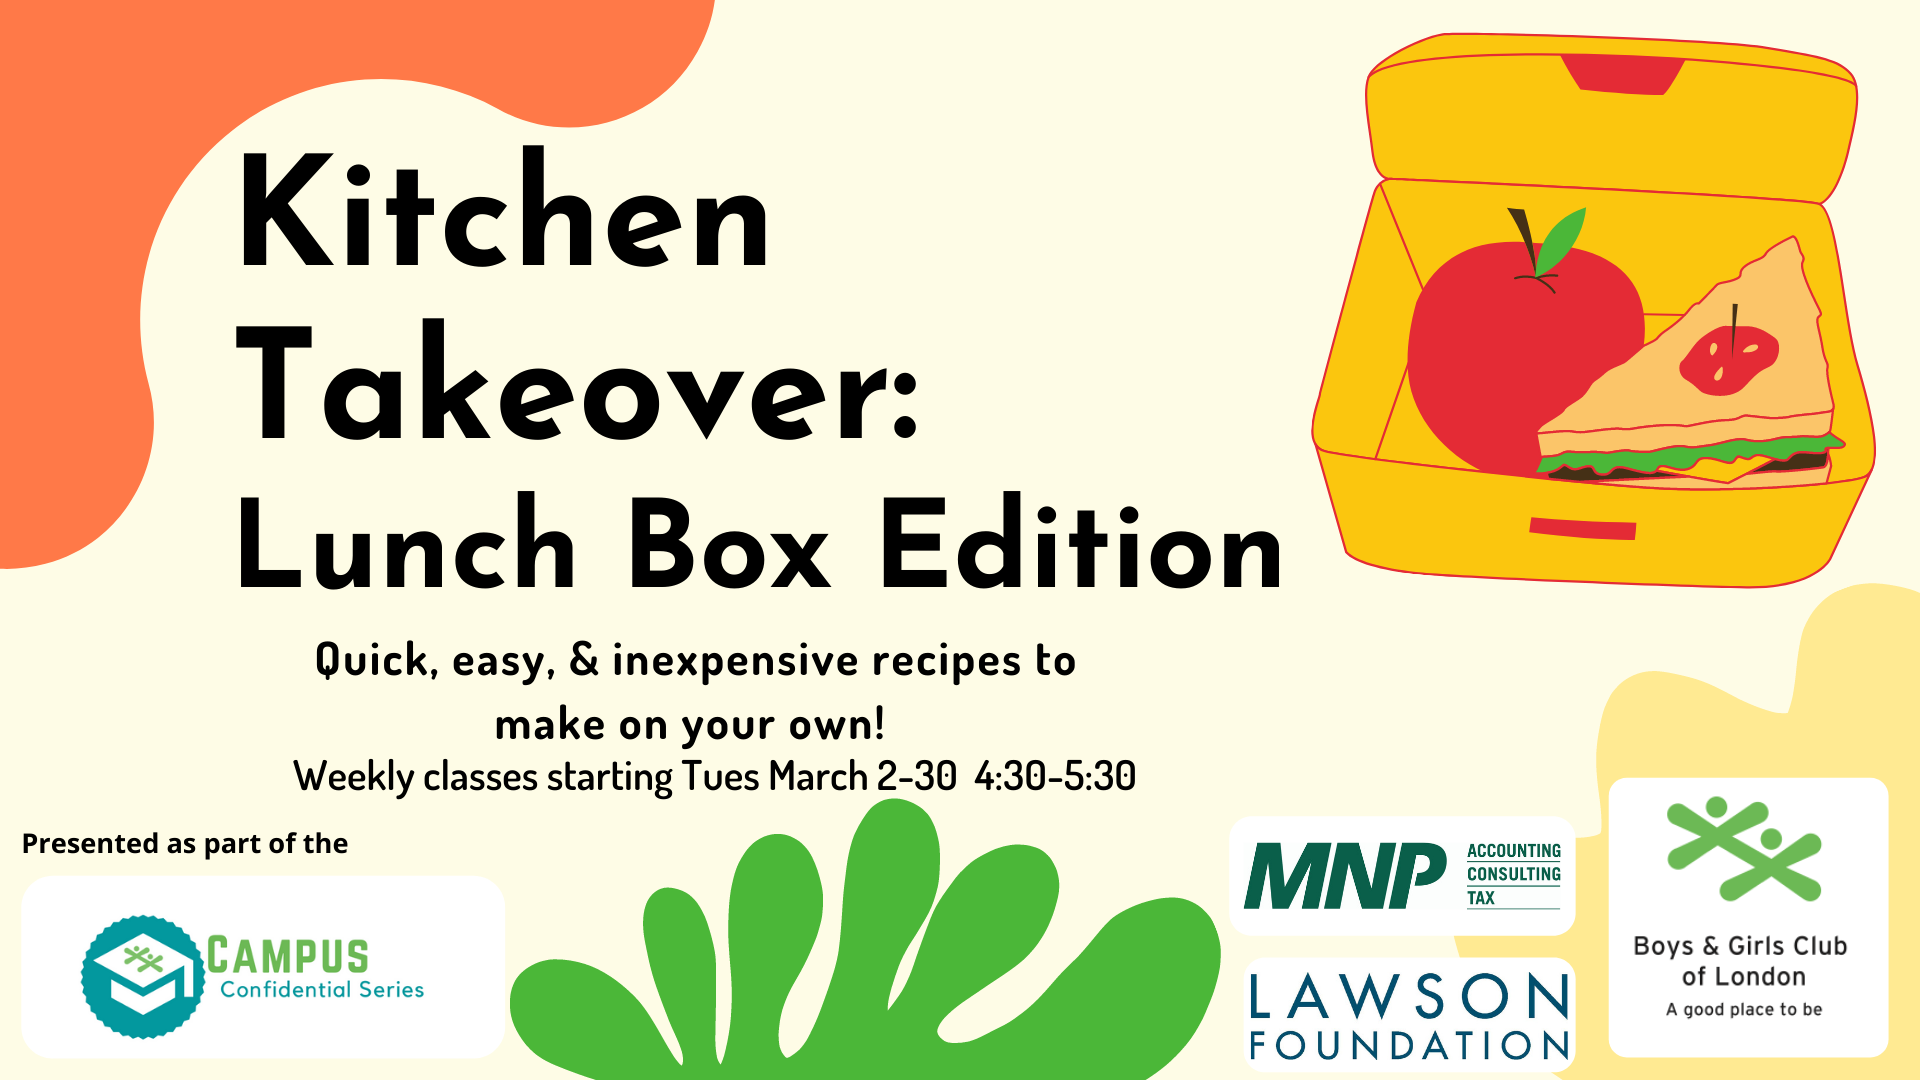 Kitchen Takeover Lunch Box Edition